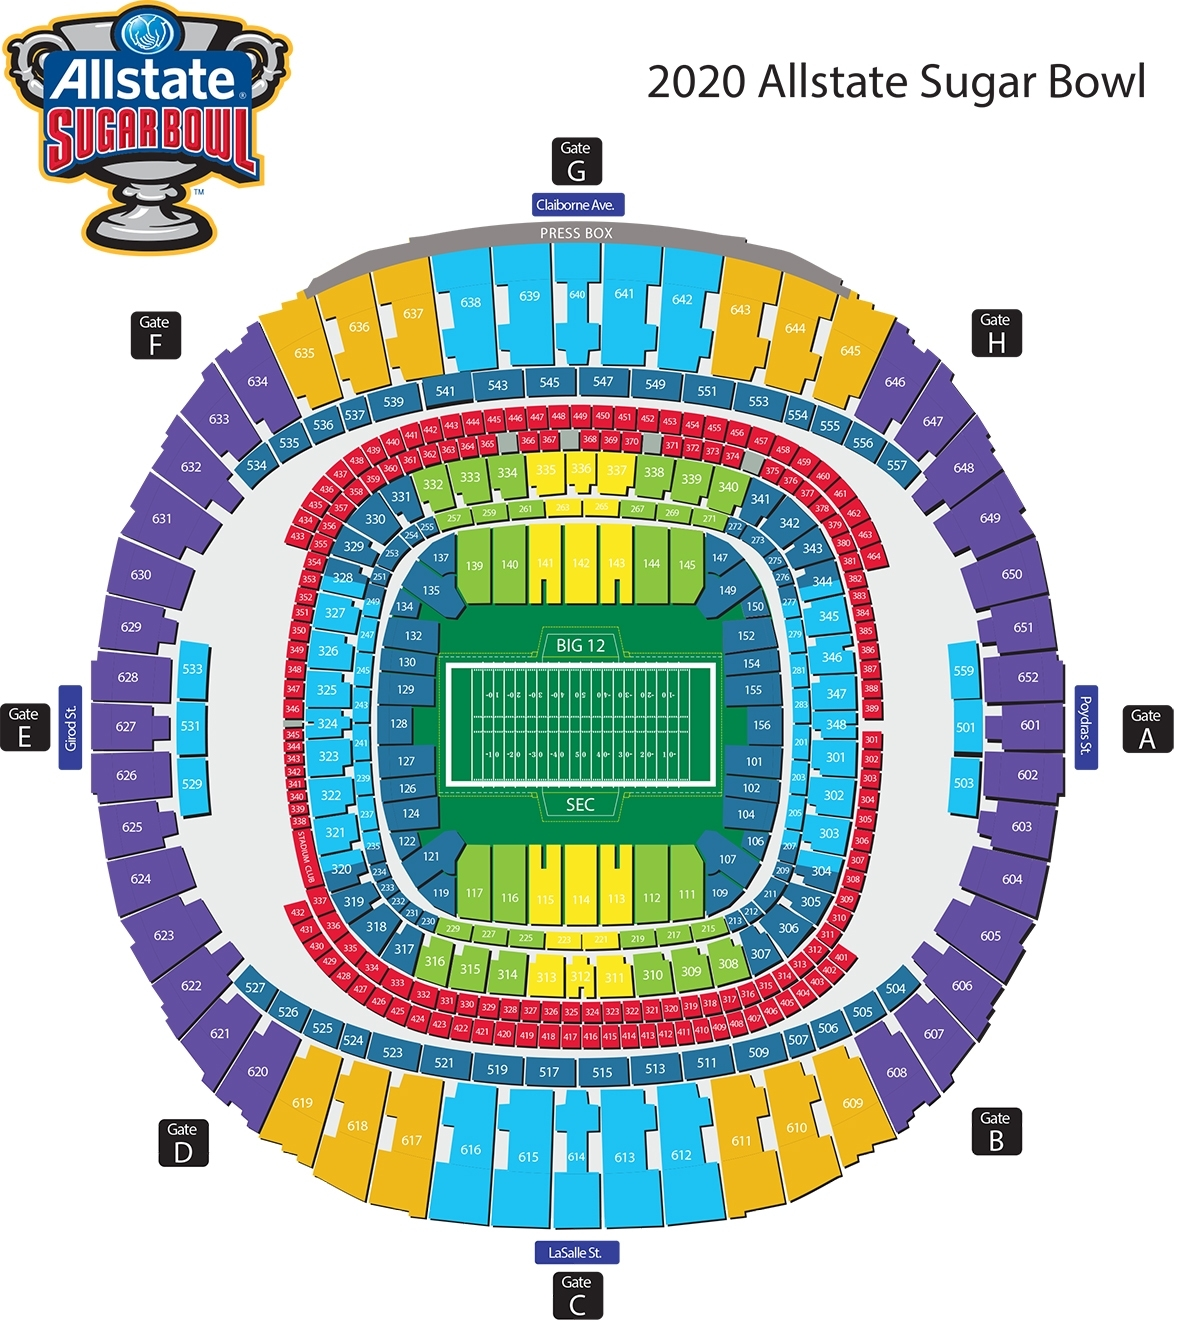 Seating Diagram - Official Site Of The Allstate Sugar Bowl pertaining to Mercedes Benz Super Bowl Seating Chart